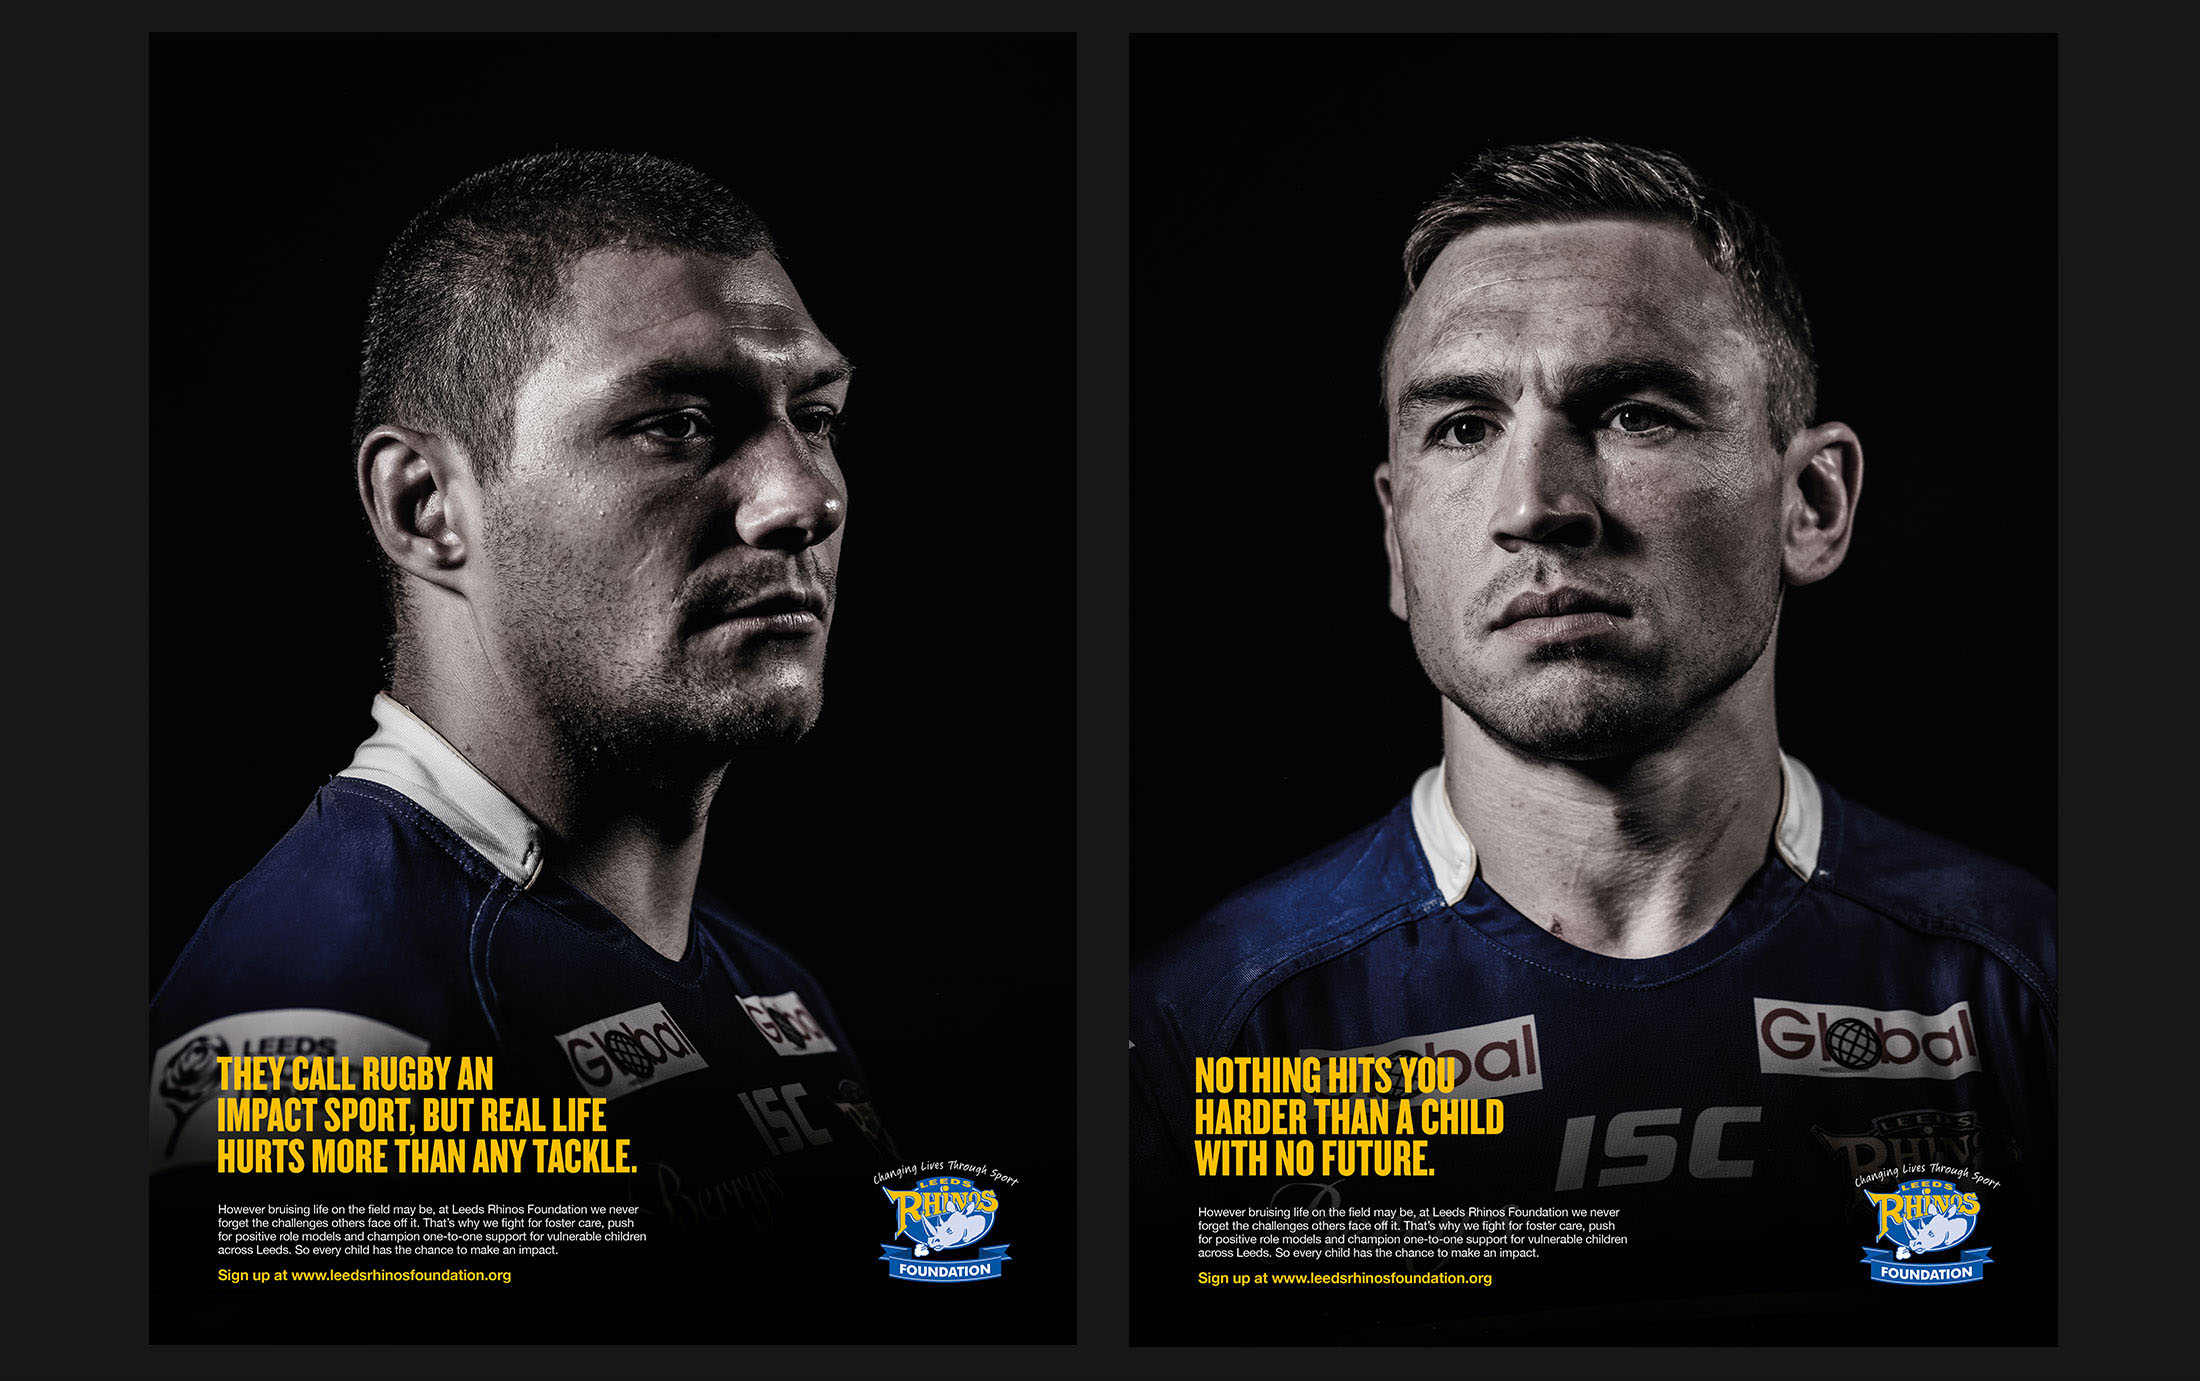 Leeds Rhinos Foundation poster